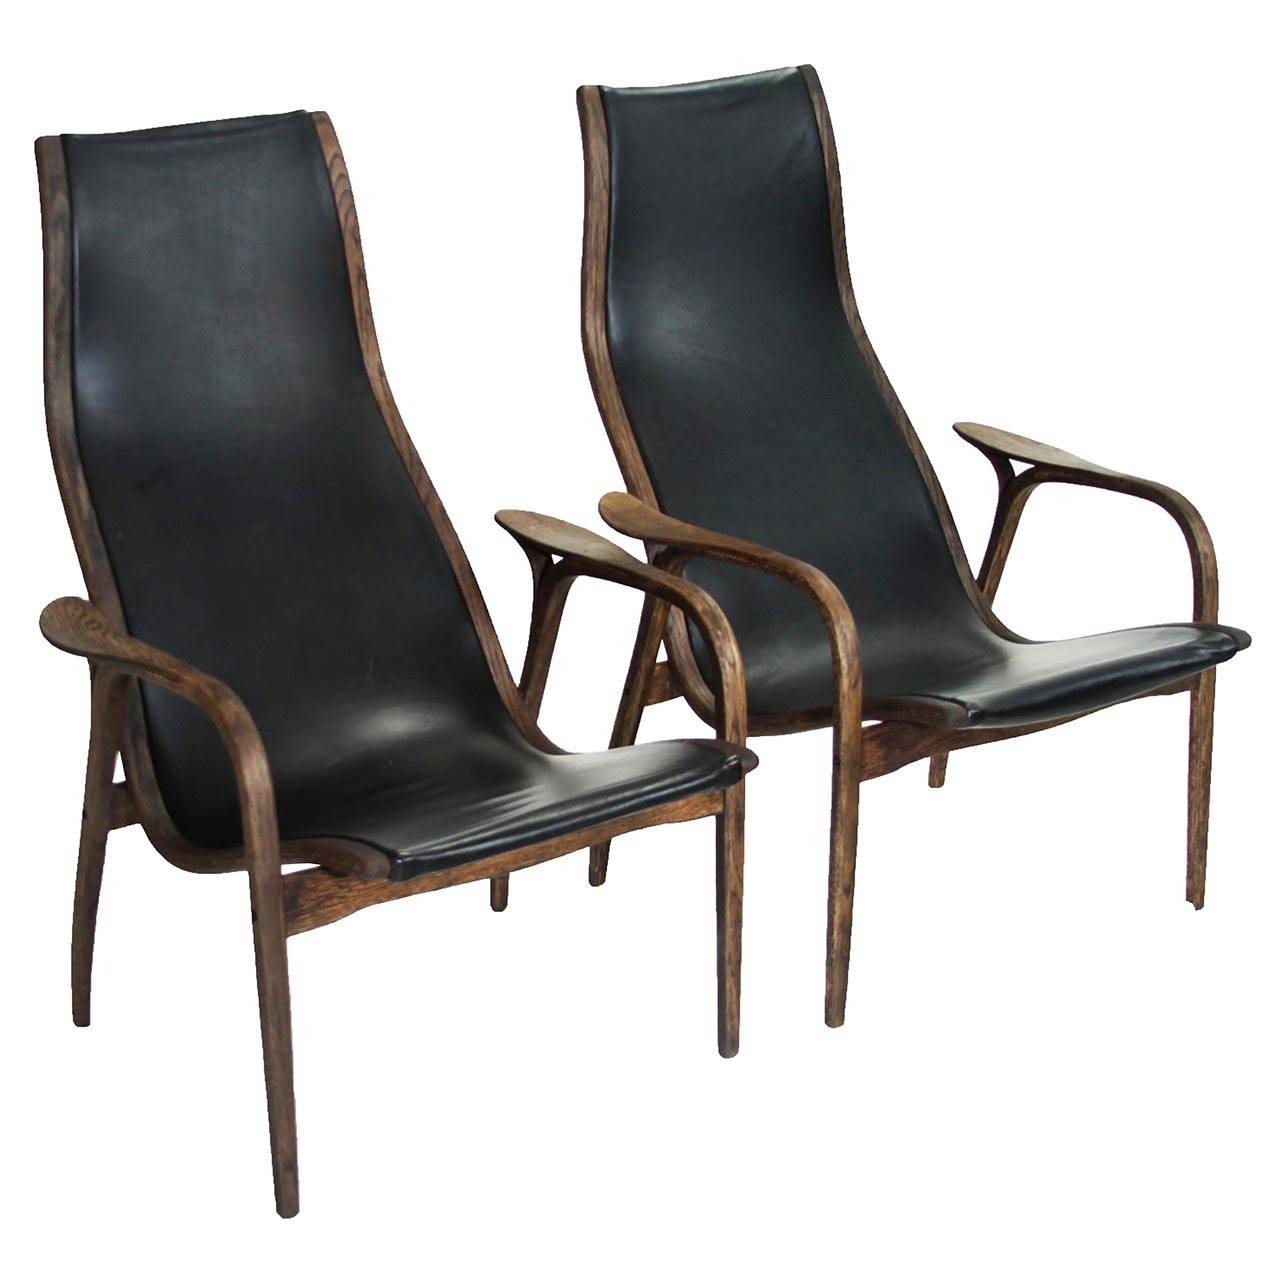 "Pair of""Lamino"" Lounge Chairs by Yngve Ekstrom at 1stdibs"